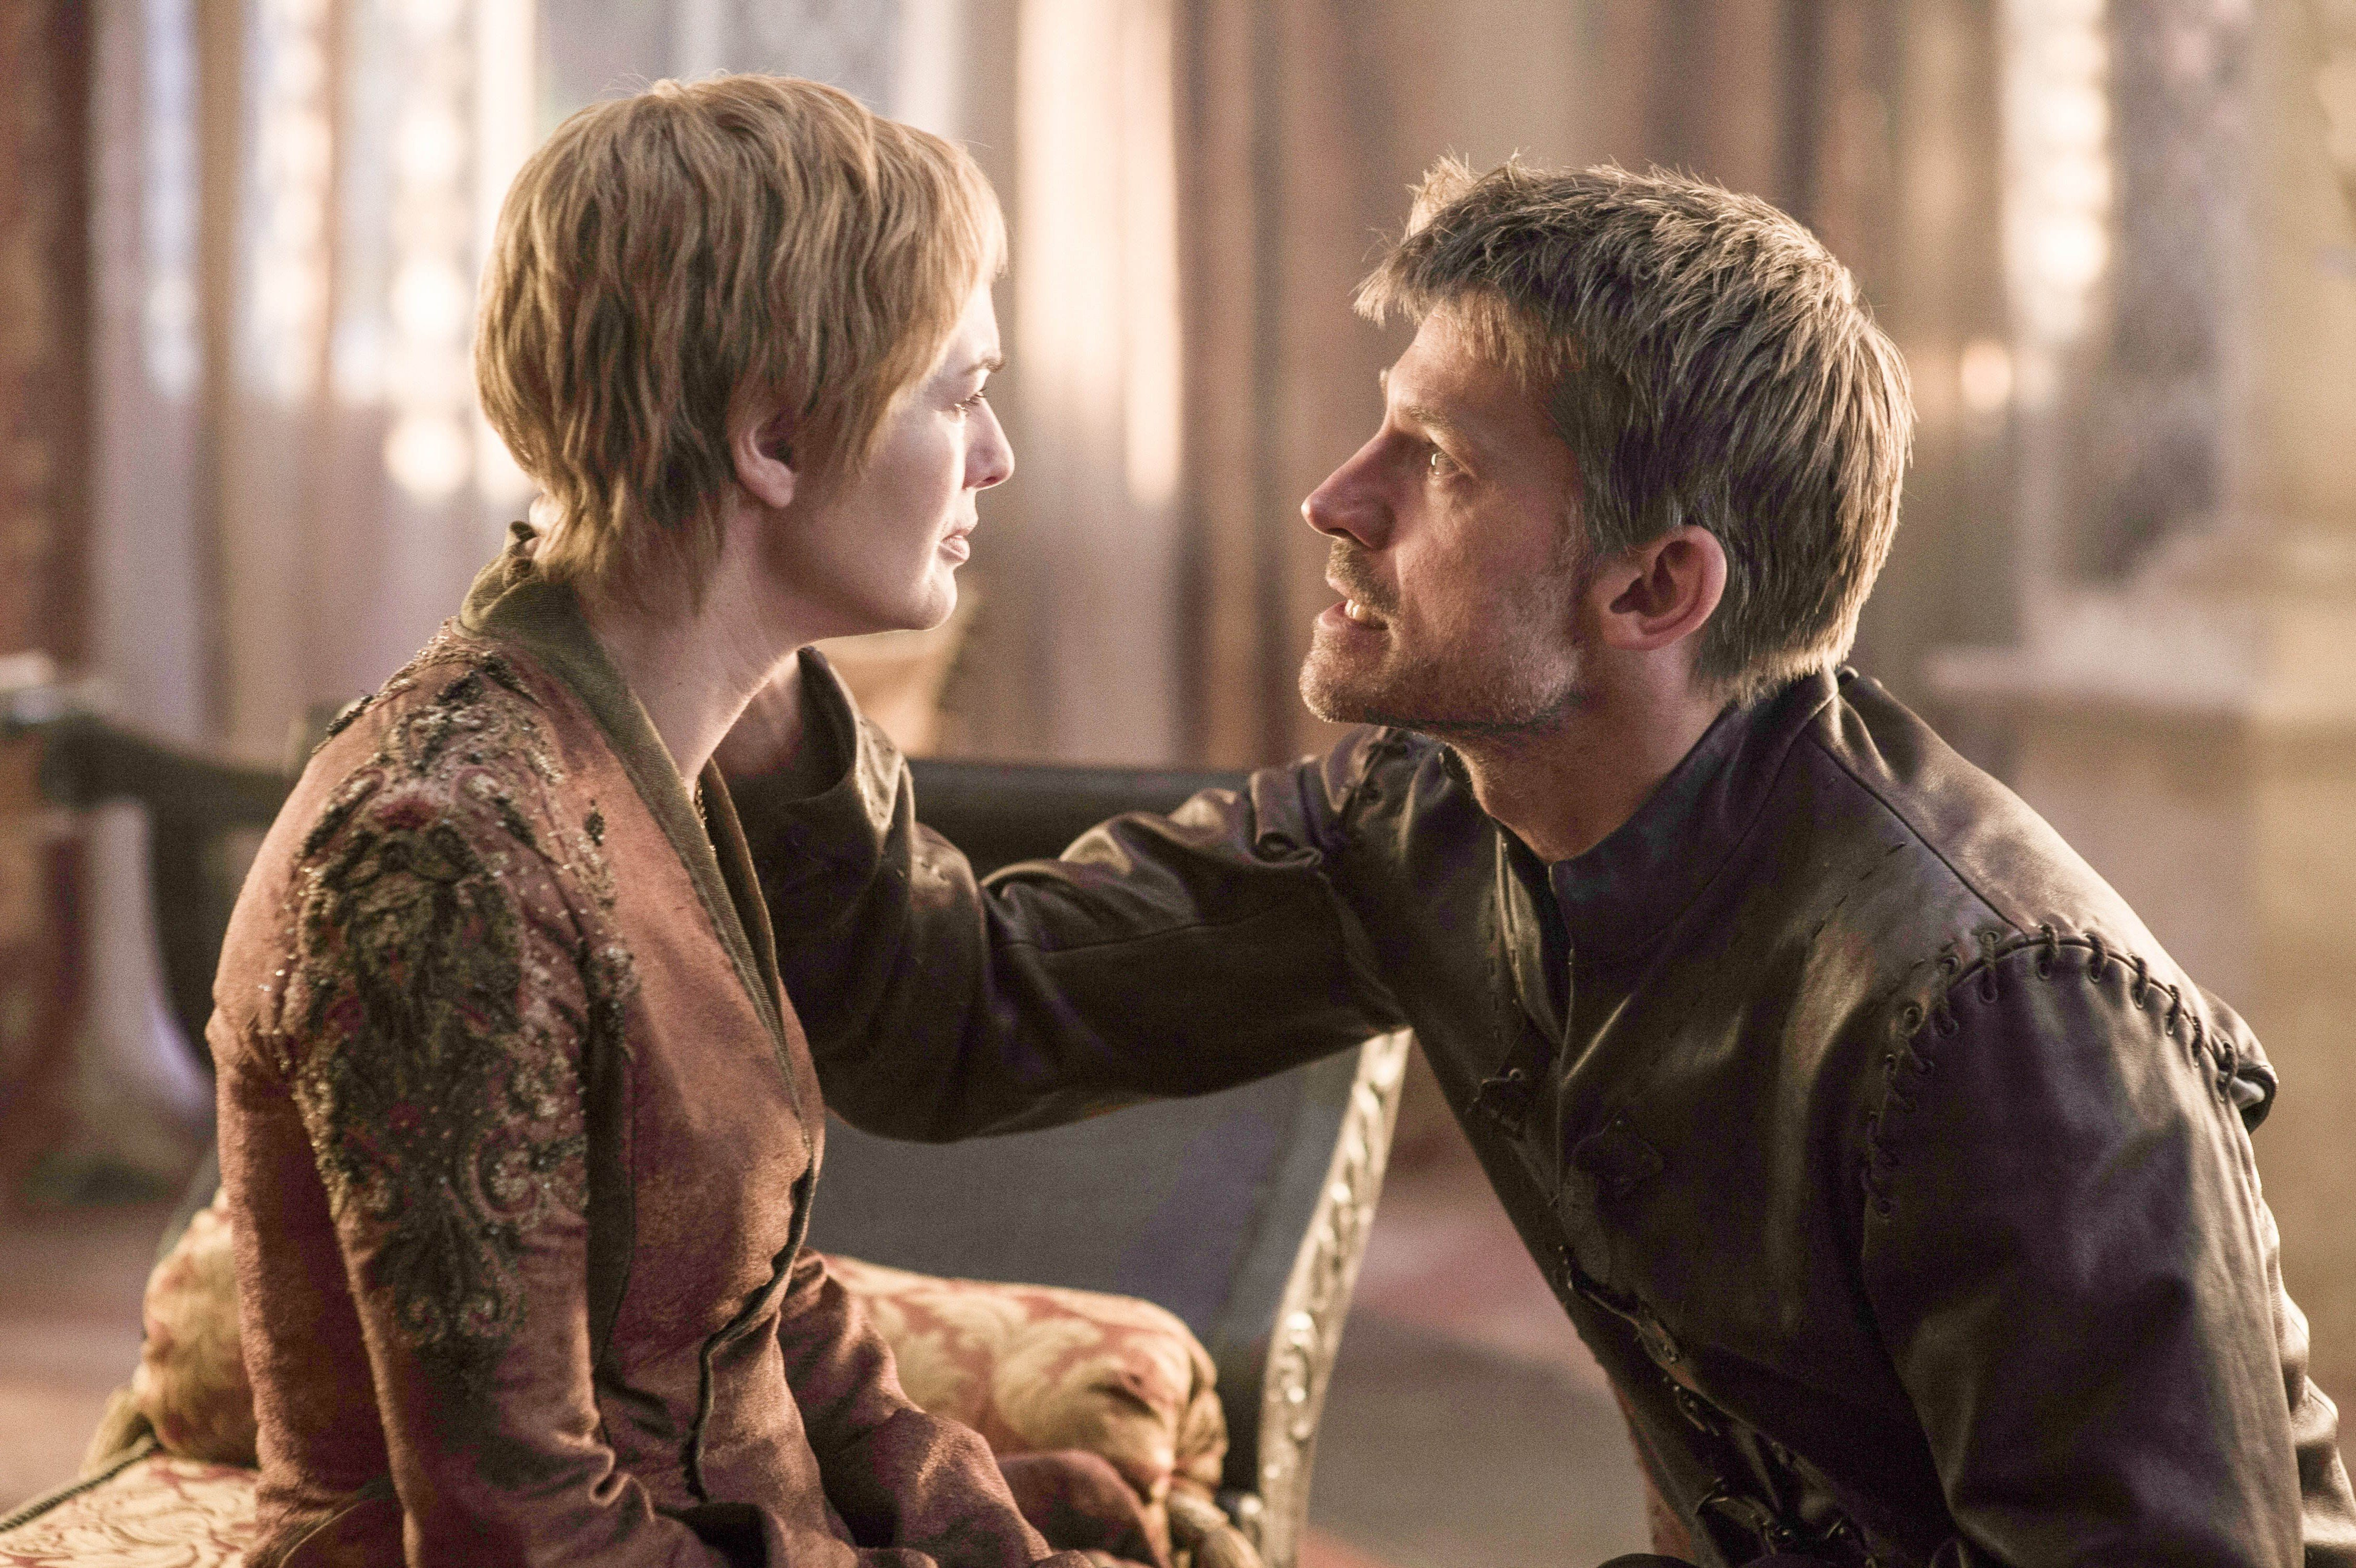 cersei and jaime lannister relationship problems